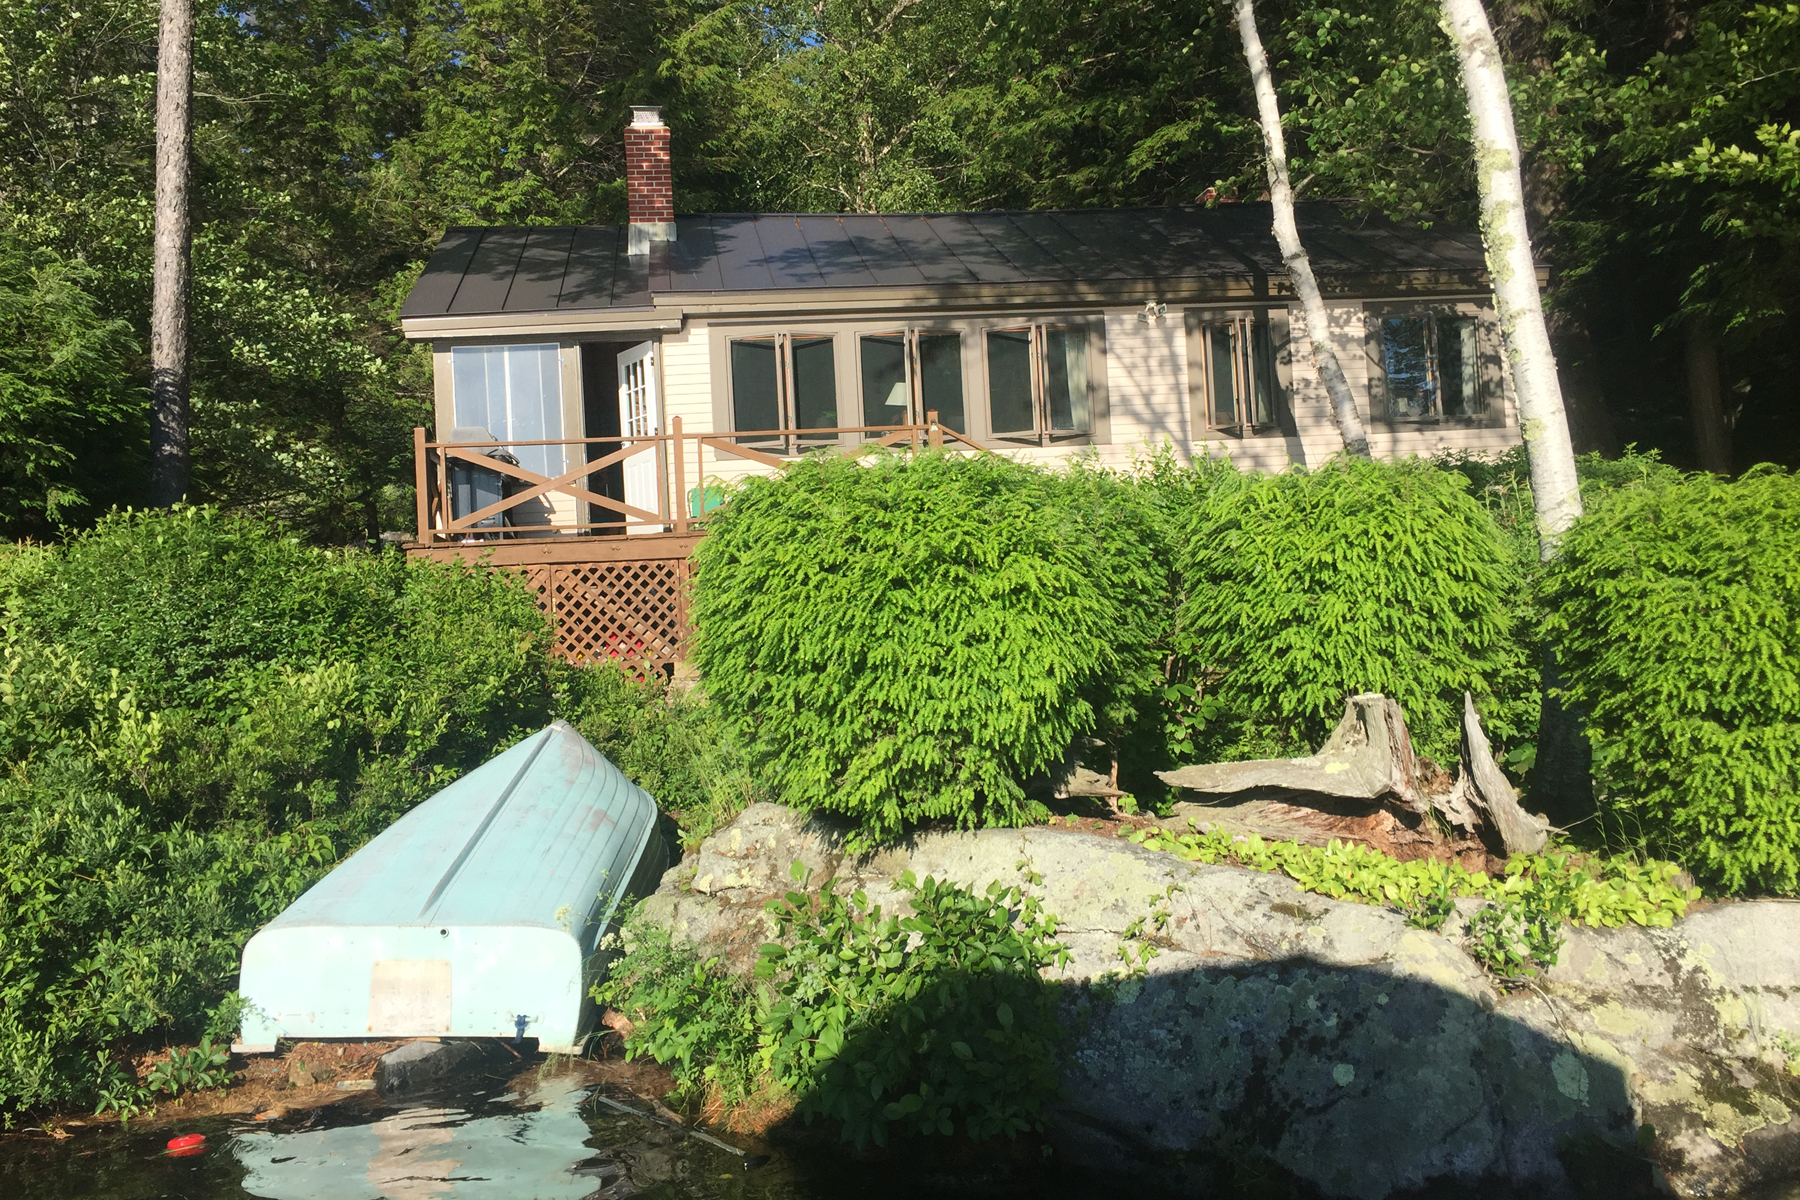 Single Family Home for Sale at 184 Bowles Road, Newbury 184 Bowles Rd Newbury, New Hampshire 03255 United States